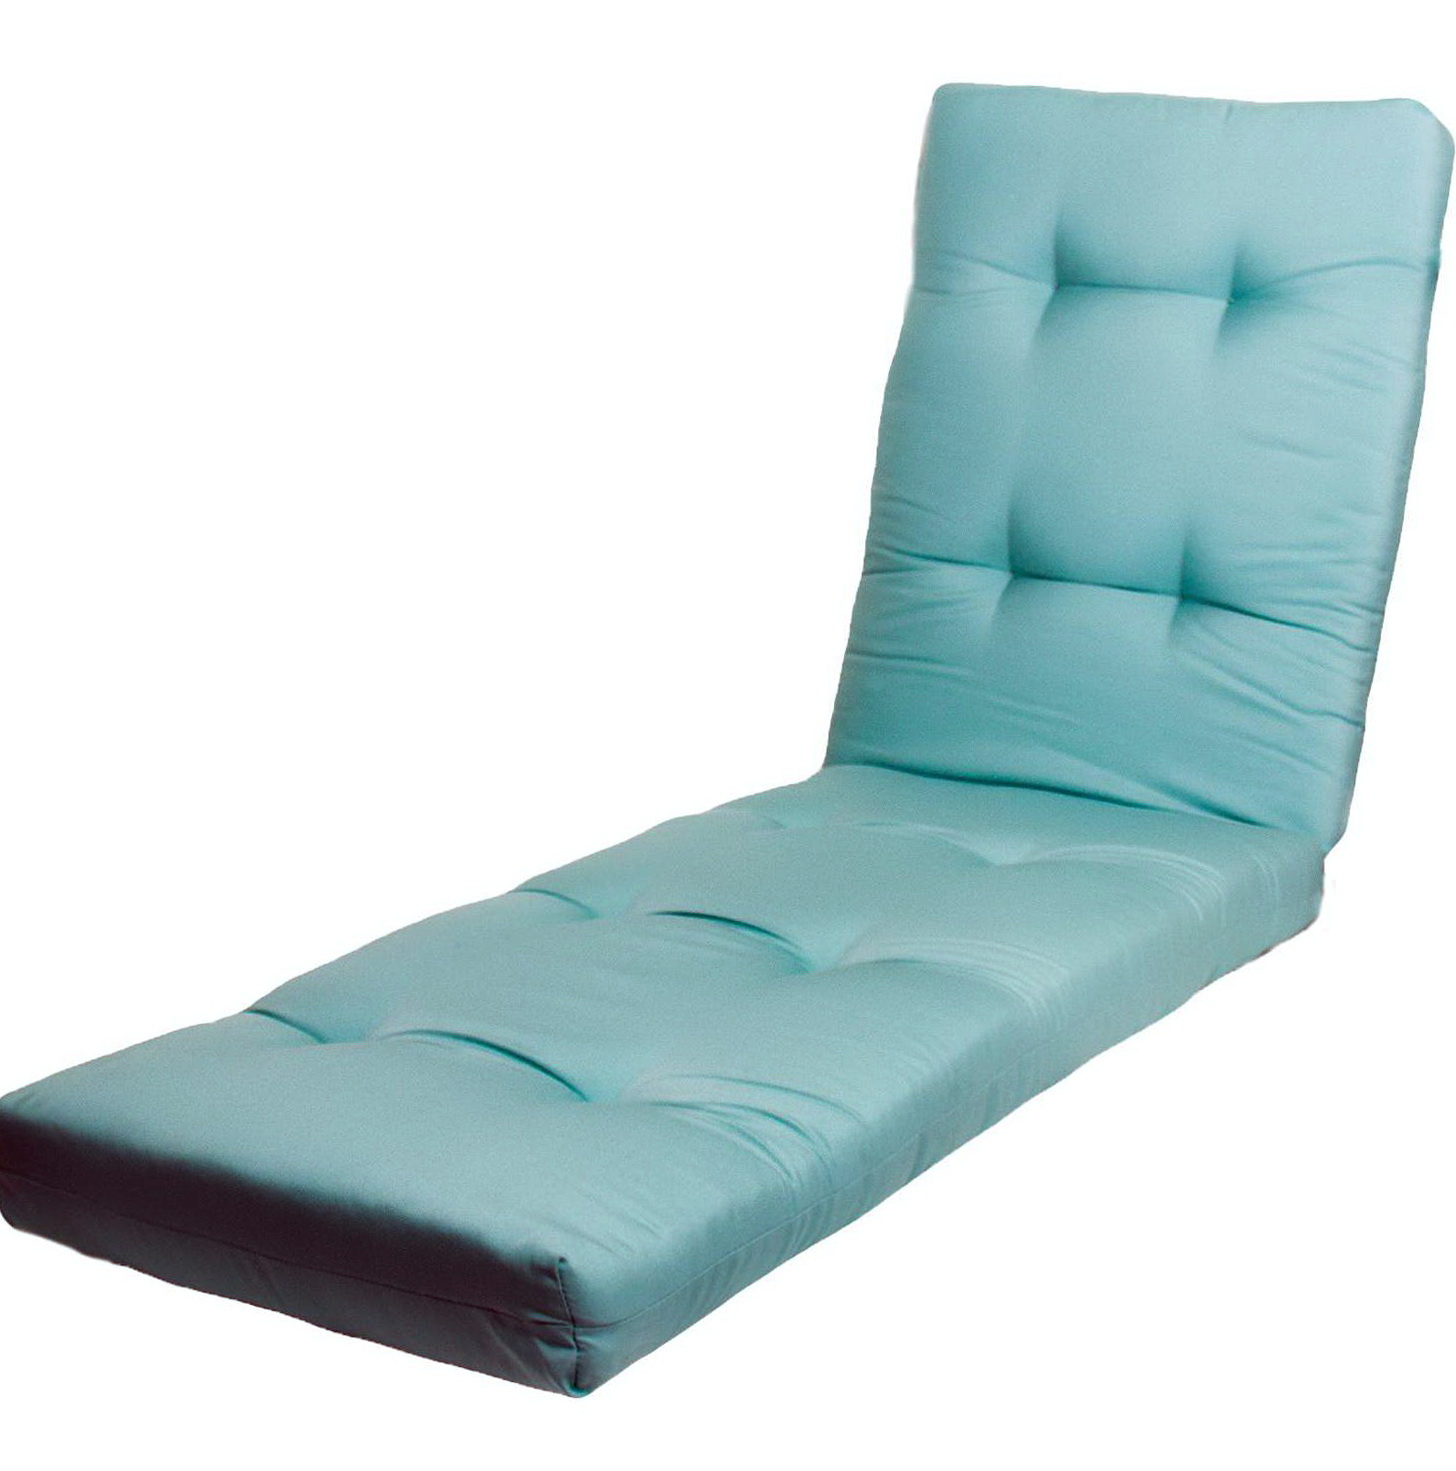 Unique 30 chaise lounge chairs for sale for Chaise cushion sale